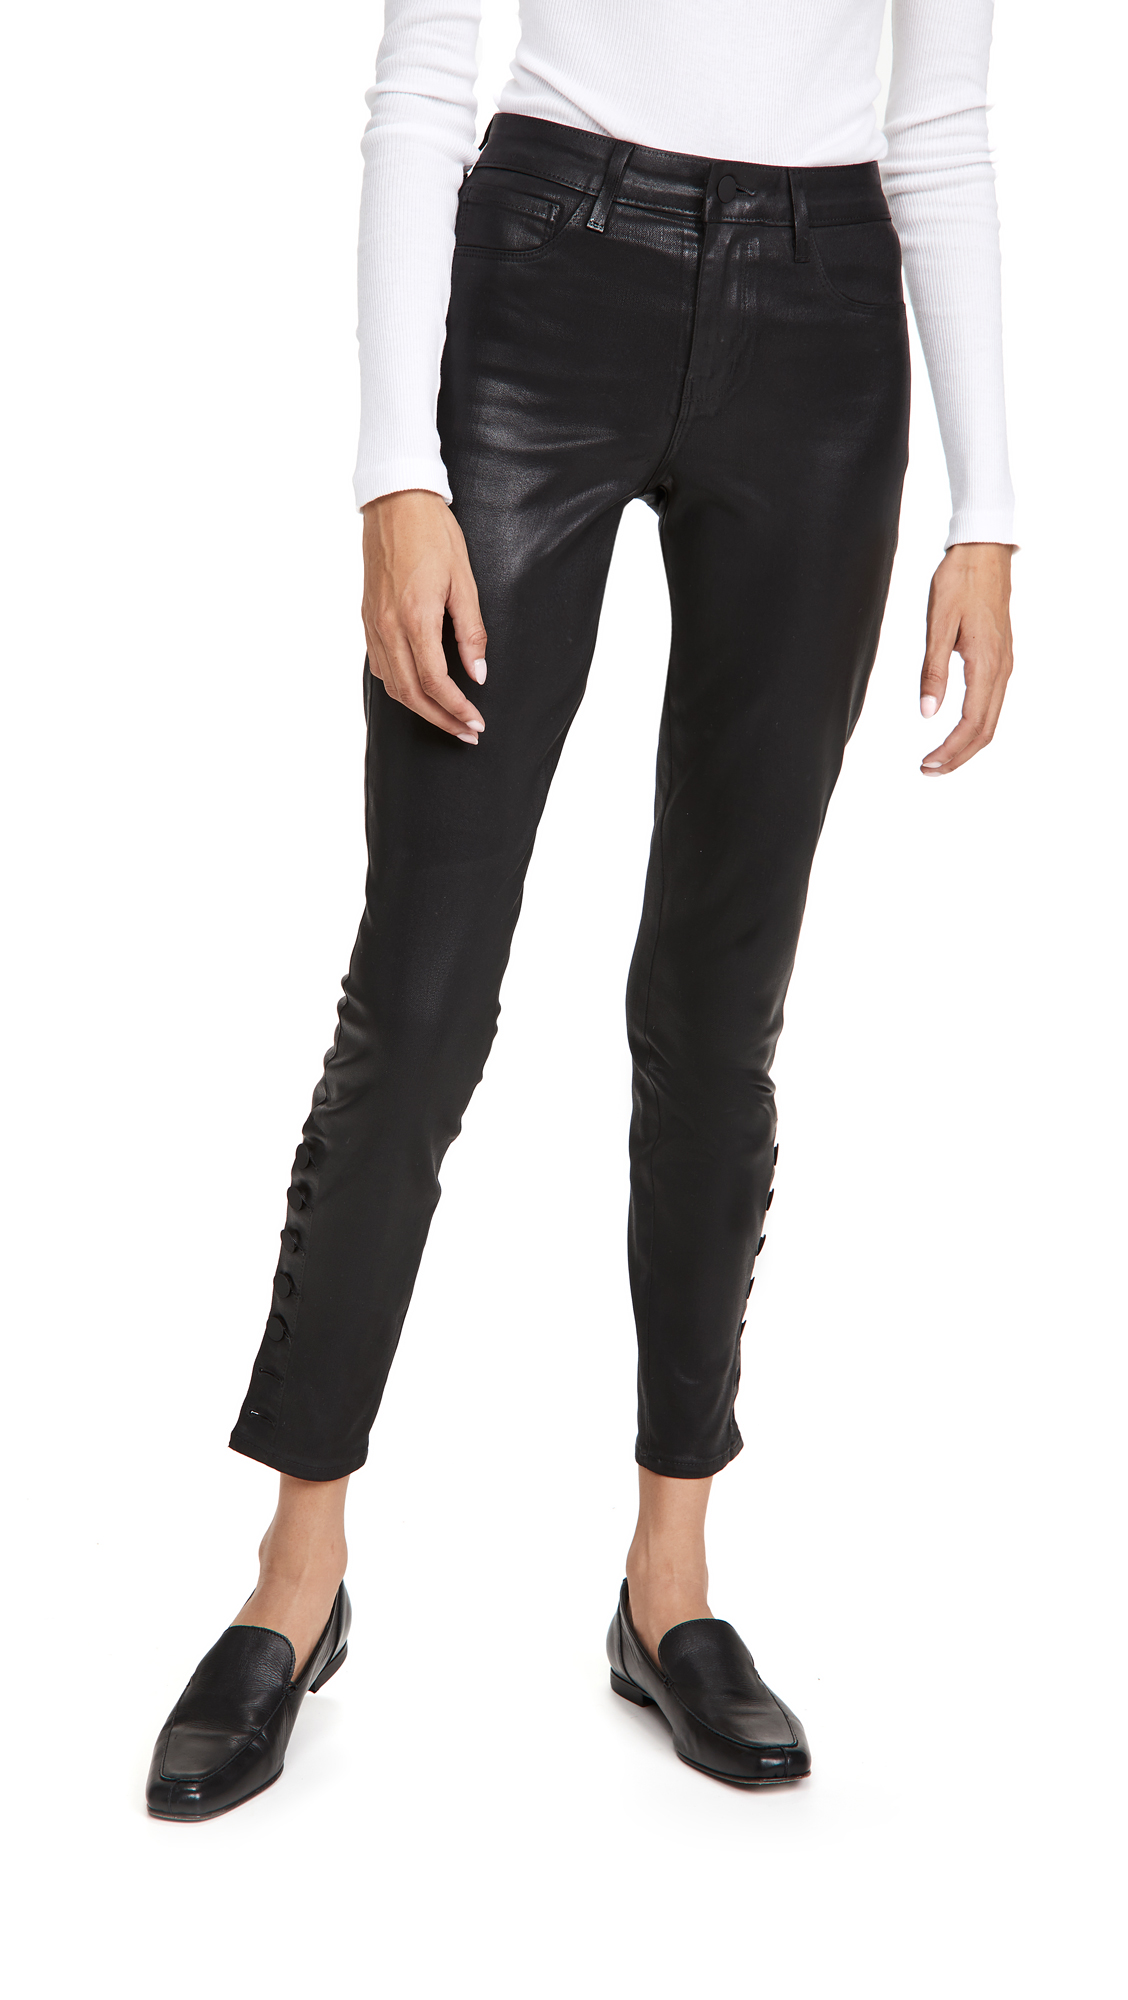 L AGENCE PIPER SKINNY COATED JEANS